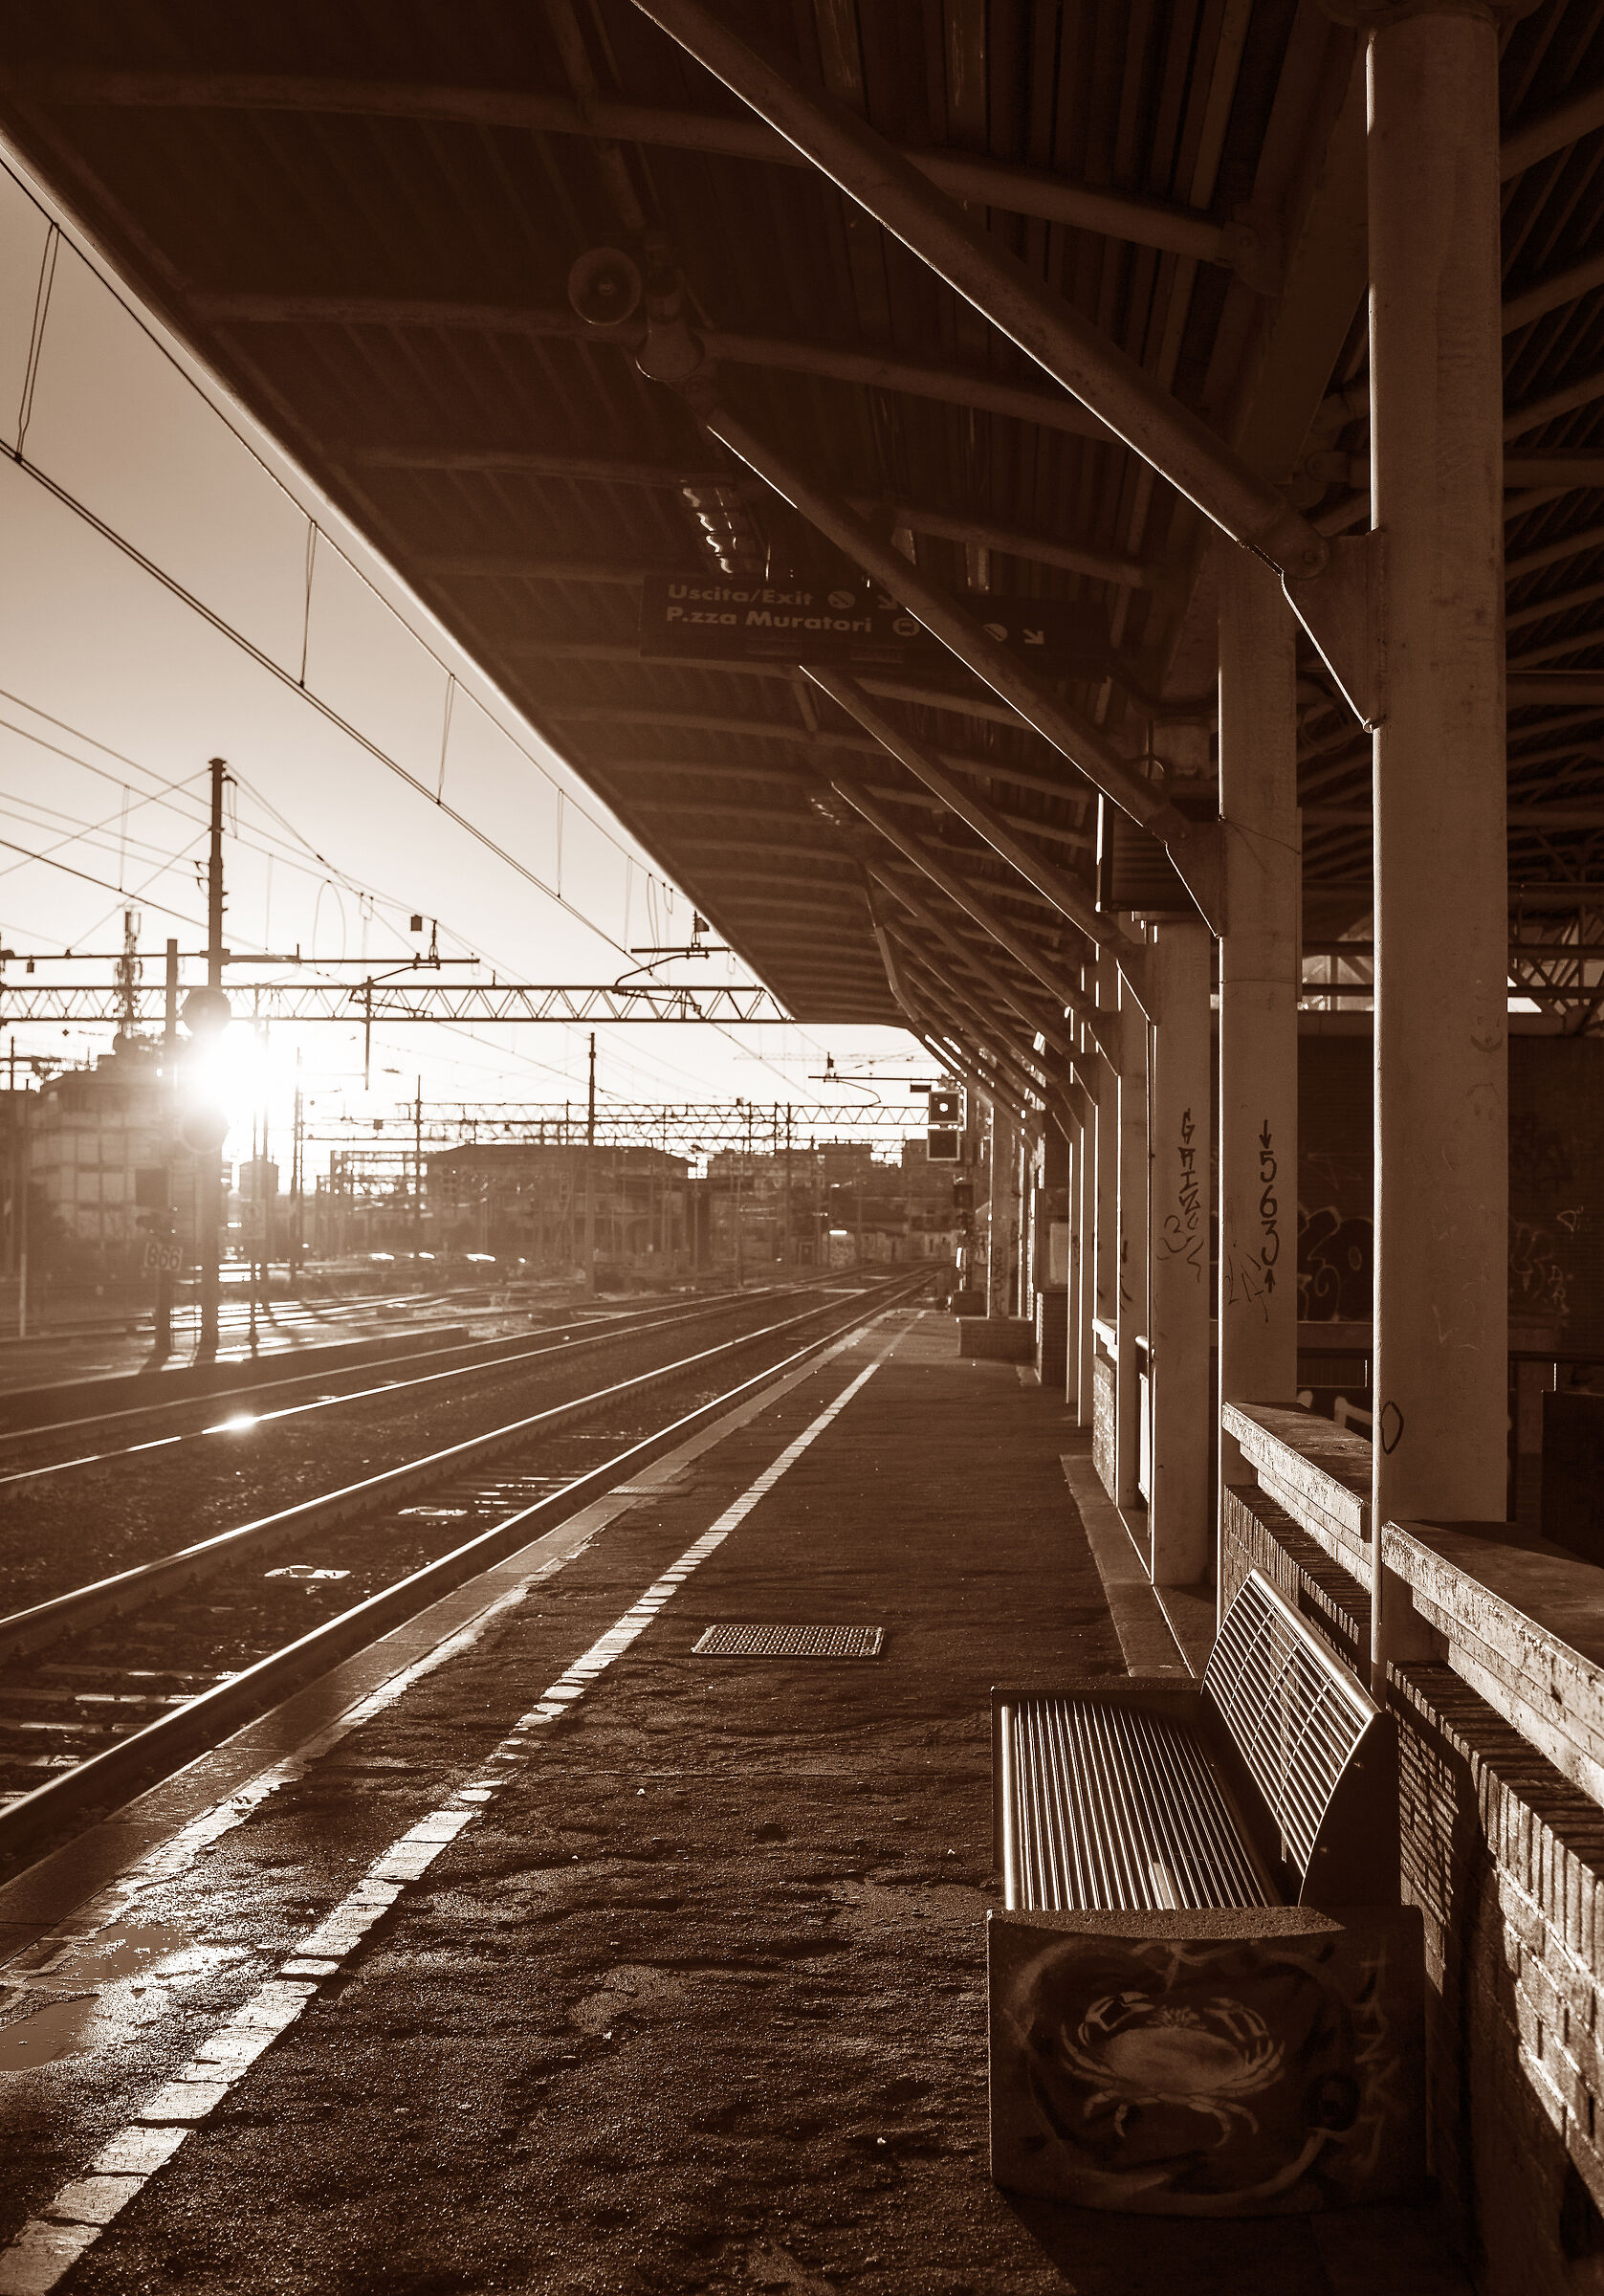 Station without trains...